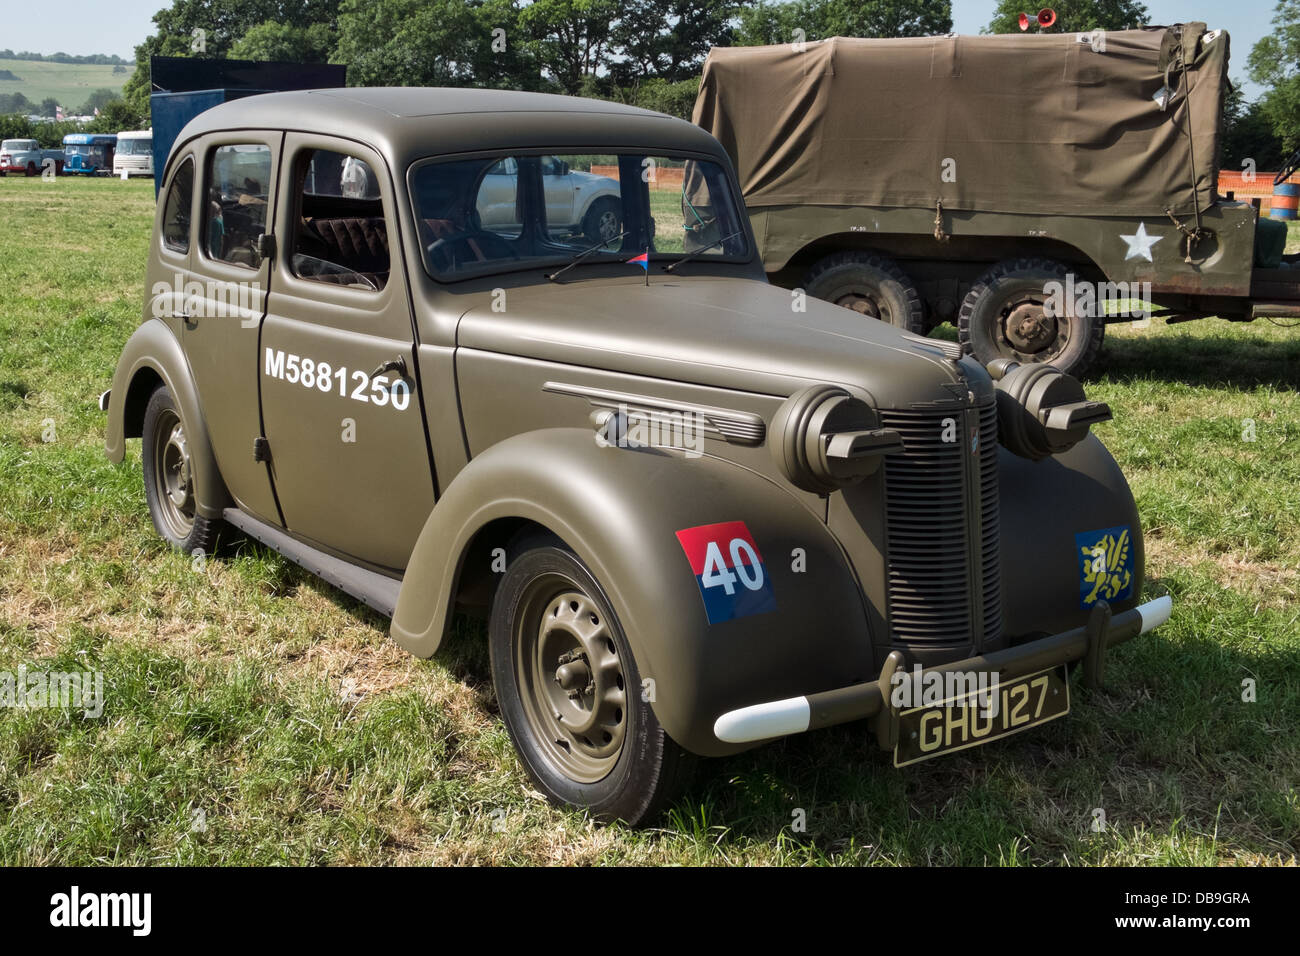 Military Car For Sale Uk